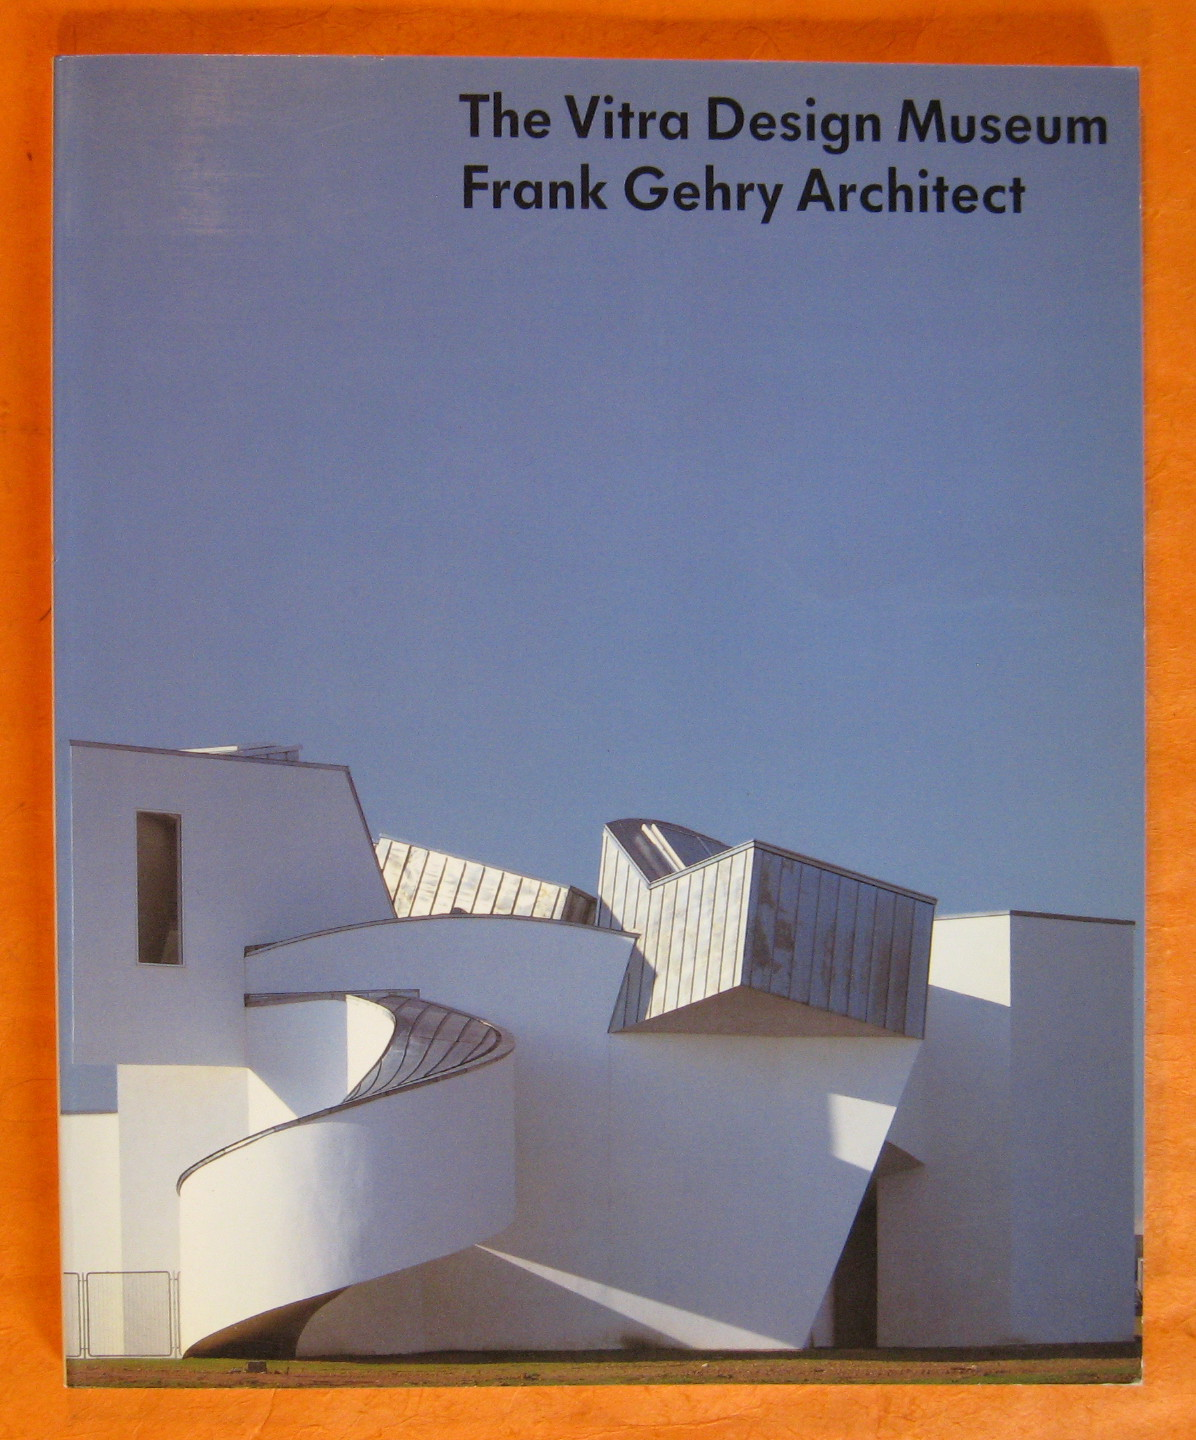 Vitra Design Museum:  Frank Gehry ARchitect, Gehry, Frank